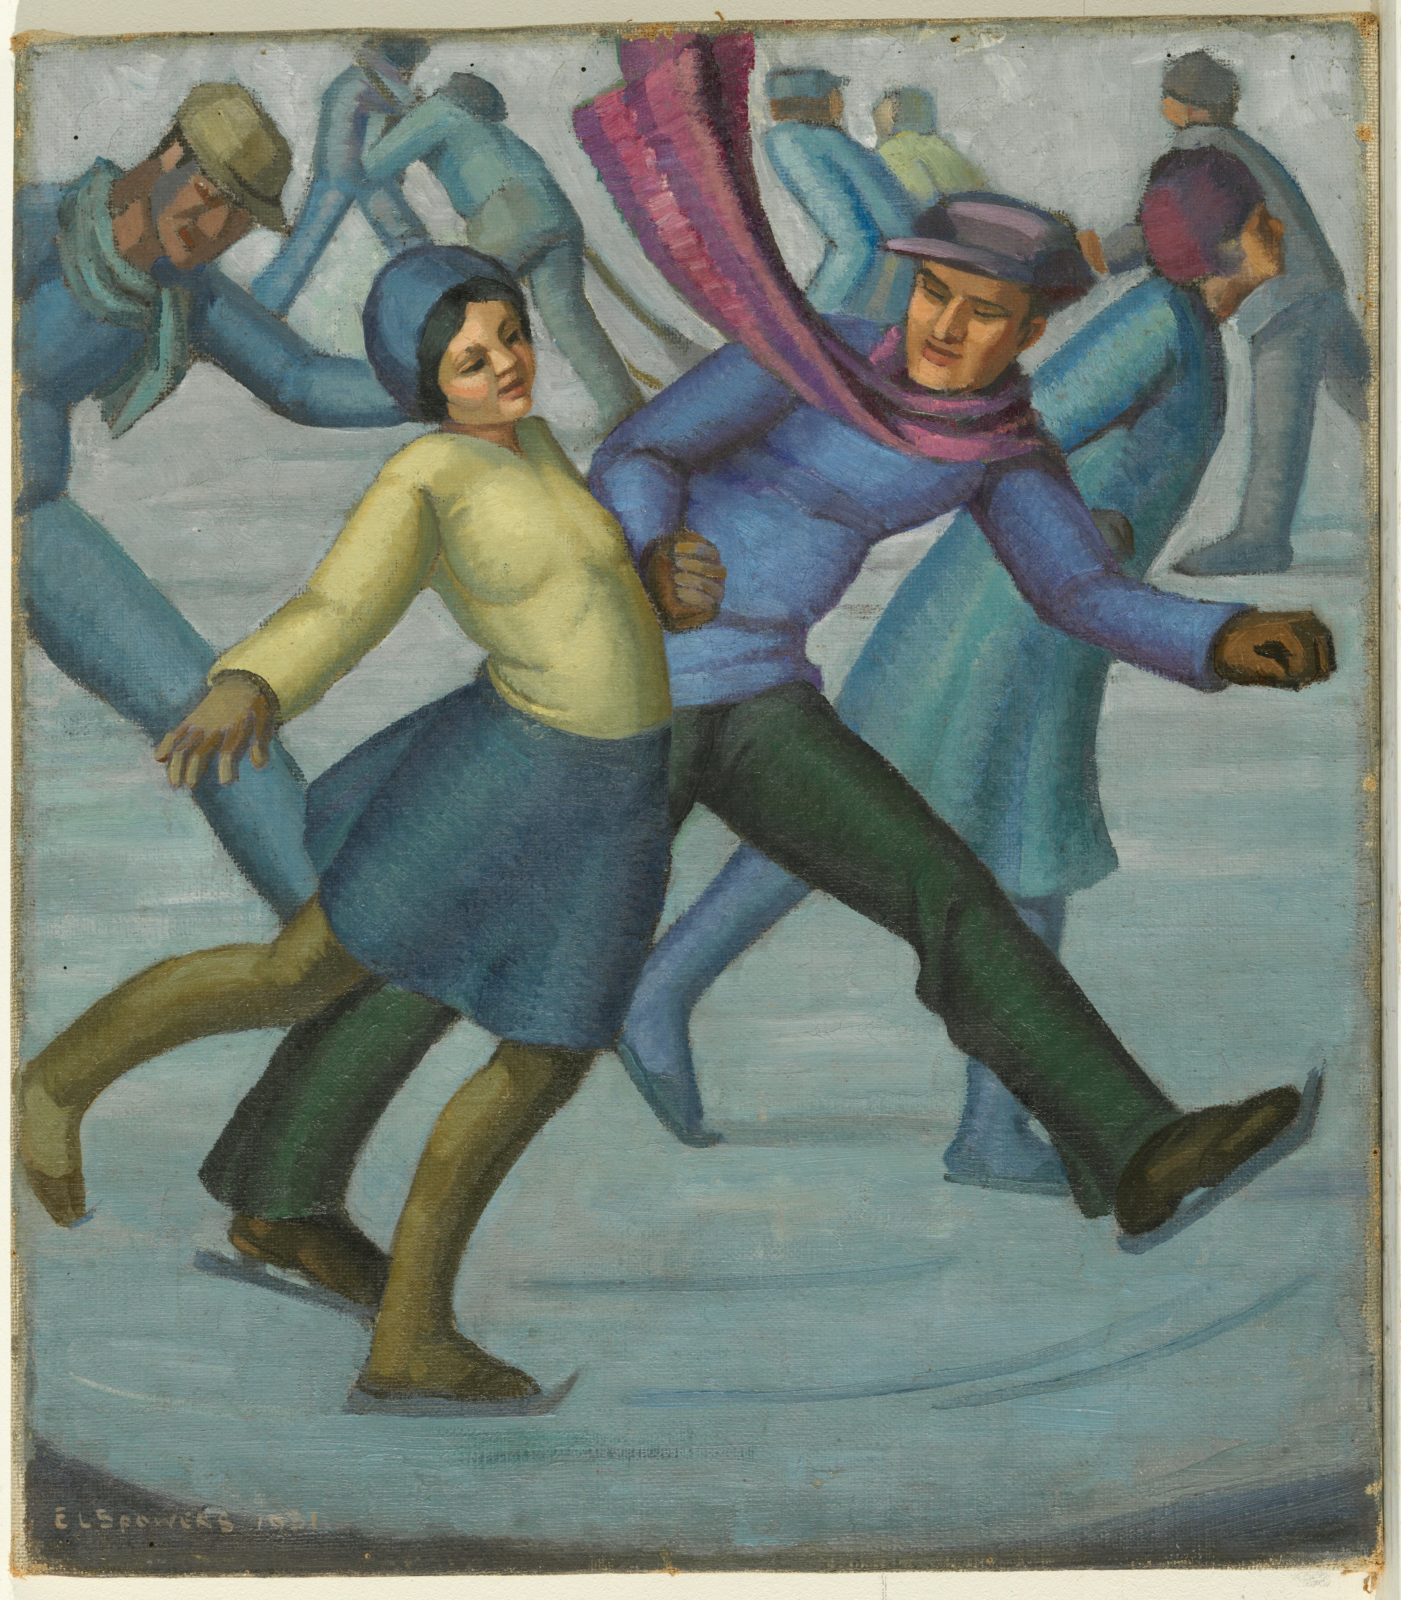 Painted image of ice skaters